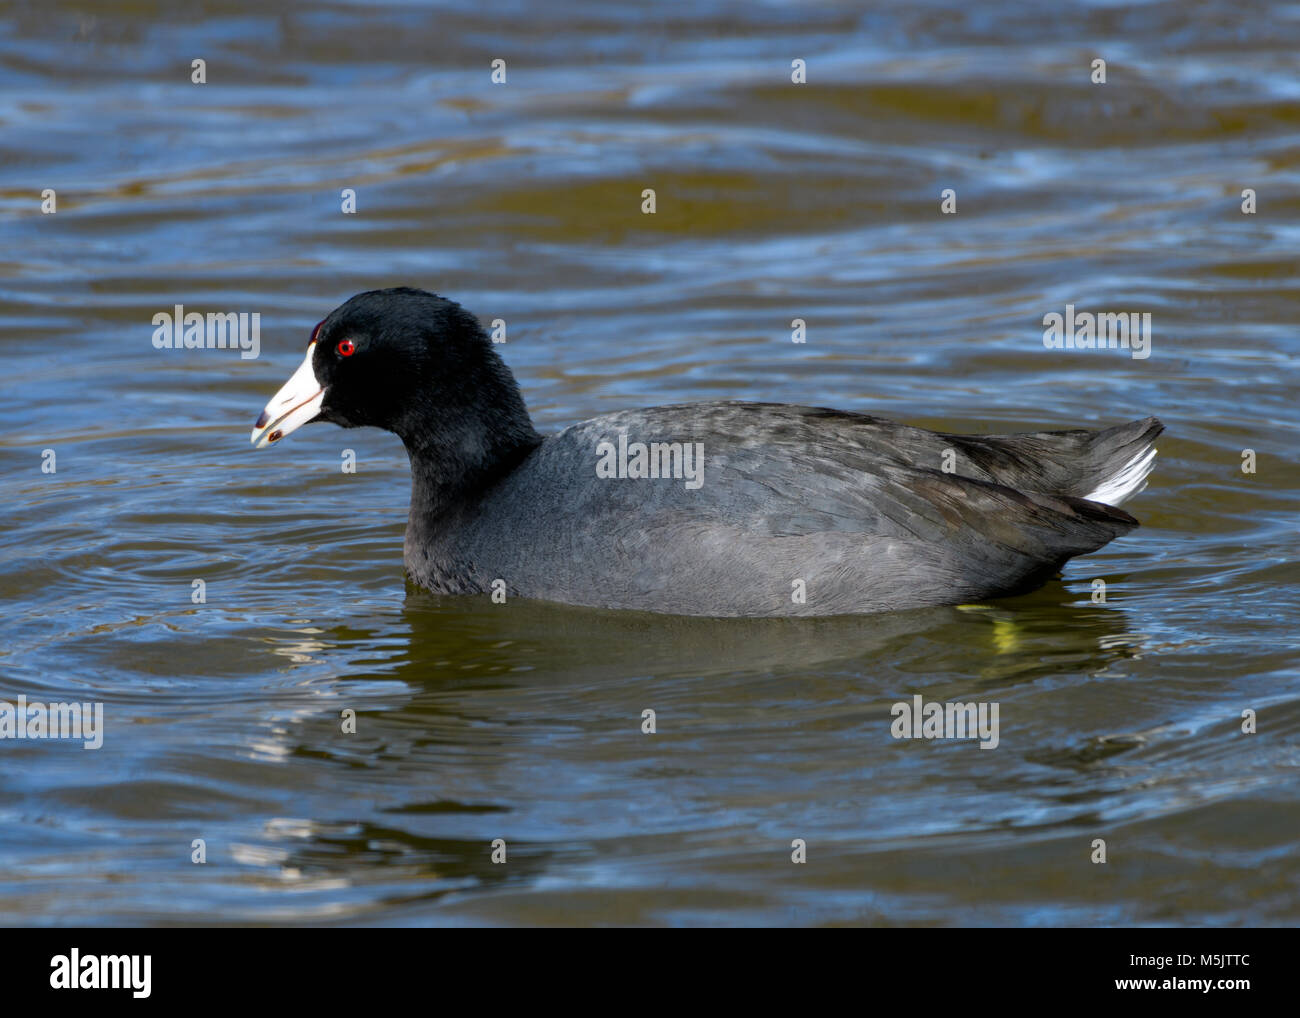 American coot - Fulica americana - or Mud Hen swimming in a lake. Full profile with detailed feathers and vivid, - Stock Image